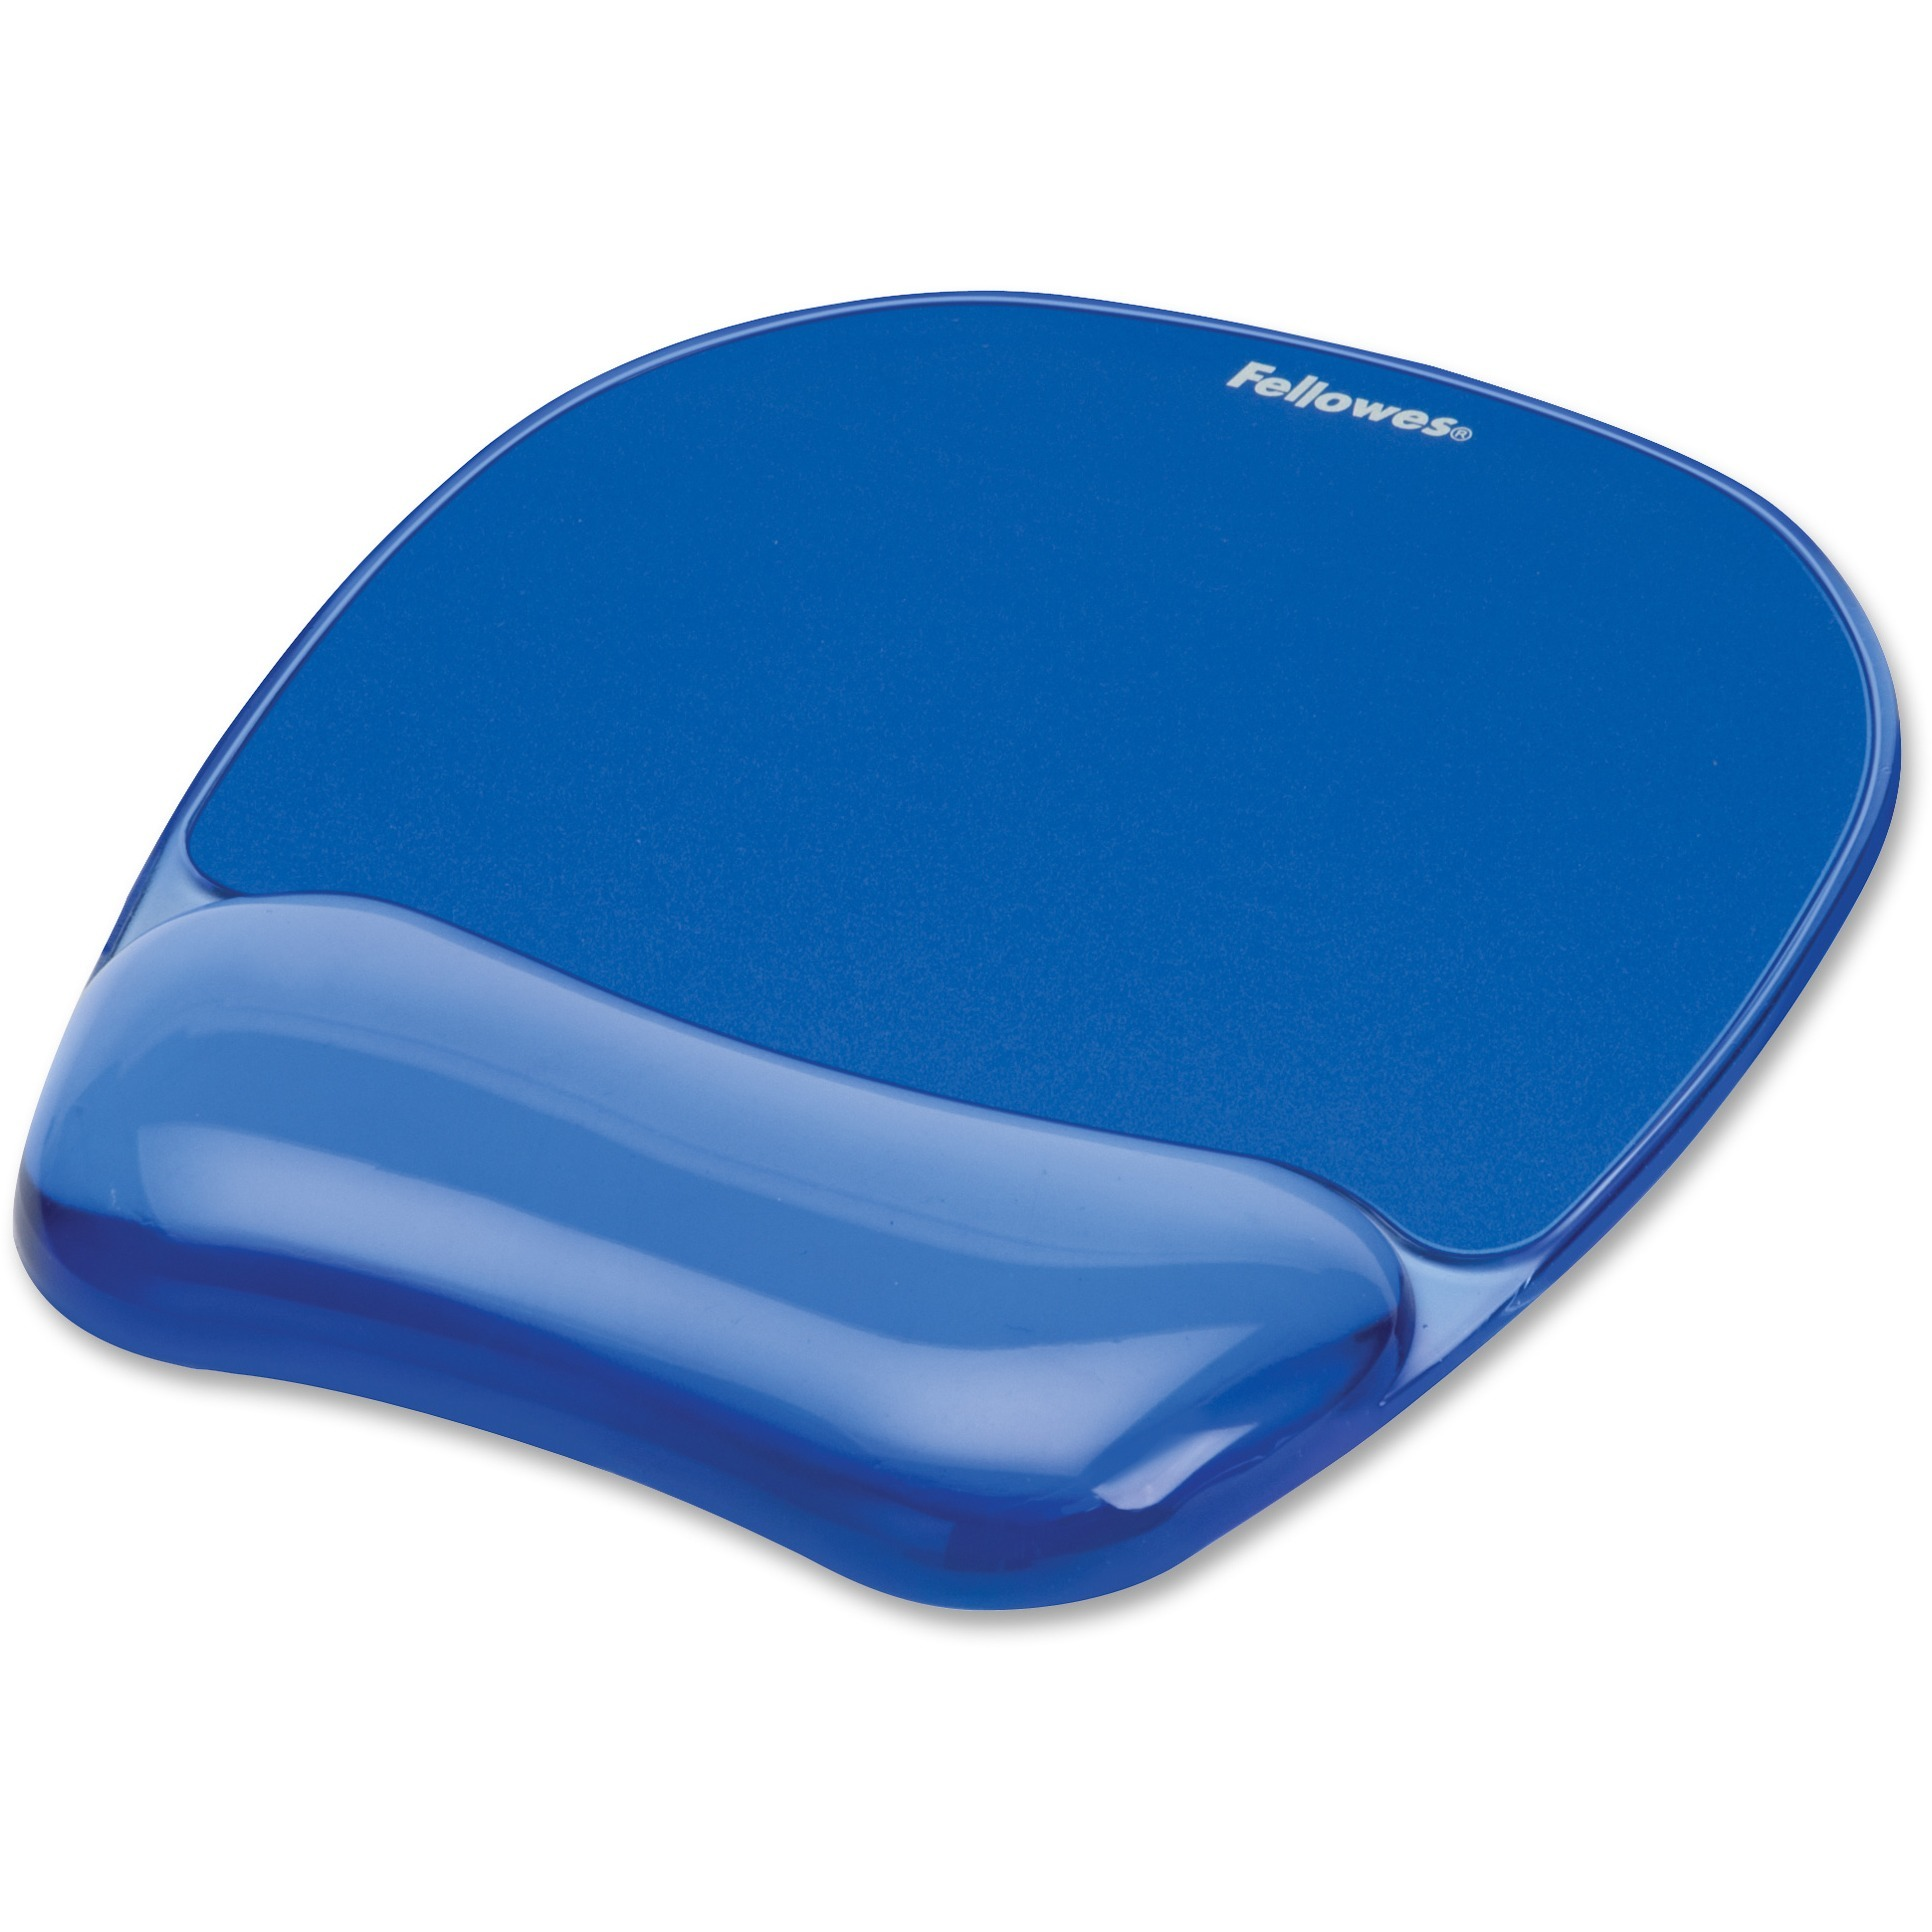 Fellowes 9182201 Mouse//Pad Wrist Support,Gel,8-1//4-Inch x9-7//8-Inch x7//8-Inch,Sapphire